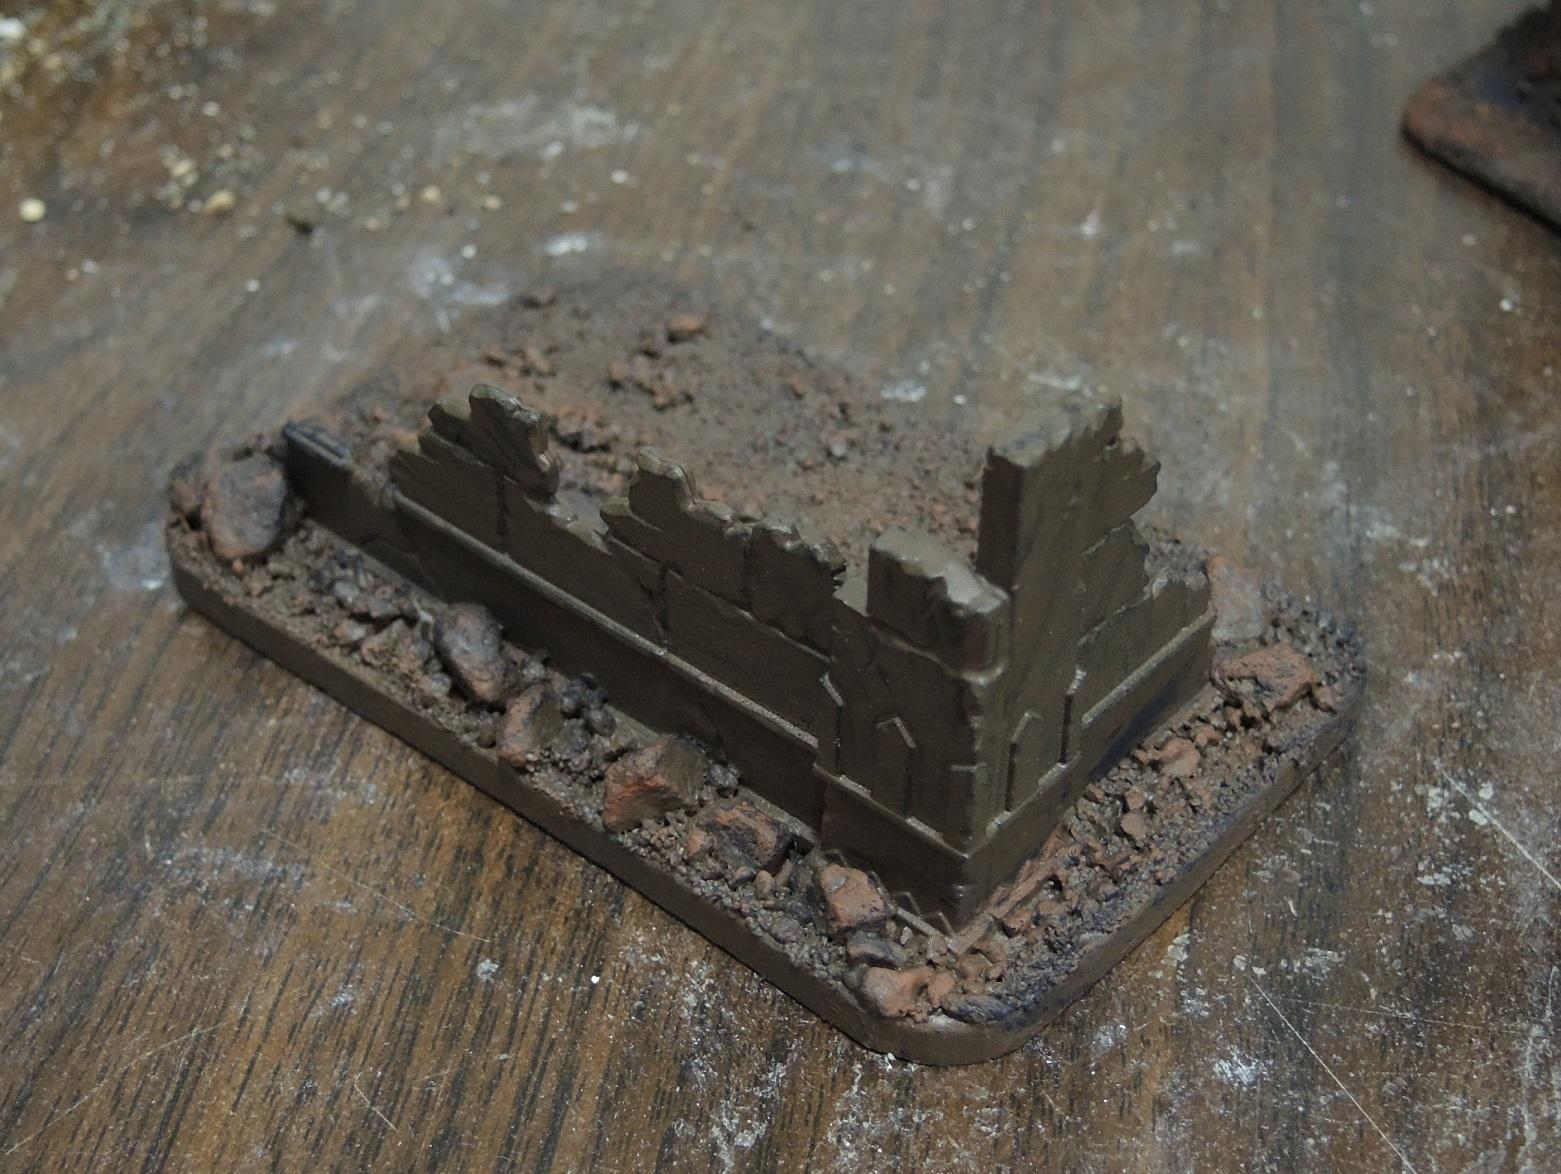 Commission, Commissioned, Game Table, Infinity, Ruins, Scratch Build, Terrain, Waaazag, Warhammer 40,000, Work In Progress